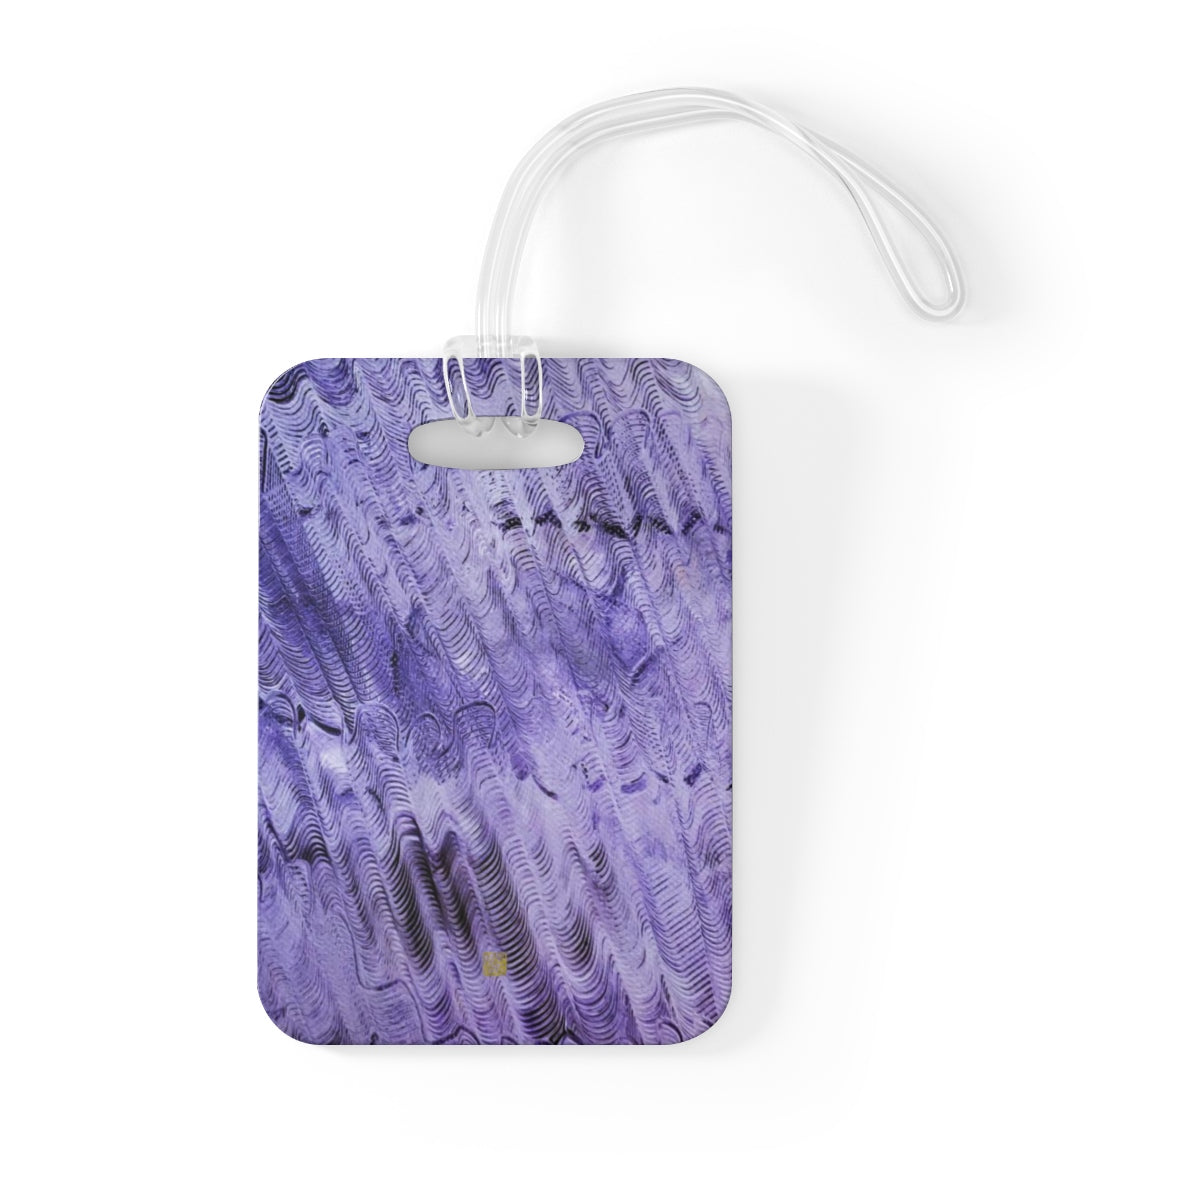 """Purple Mystery"" Abstract Wavy Pattern, Glossy Lightweight Plastic Bag Tag, Made in USA - alicechanart"